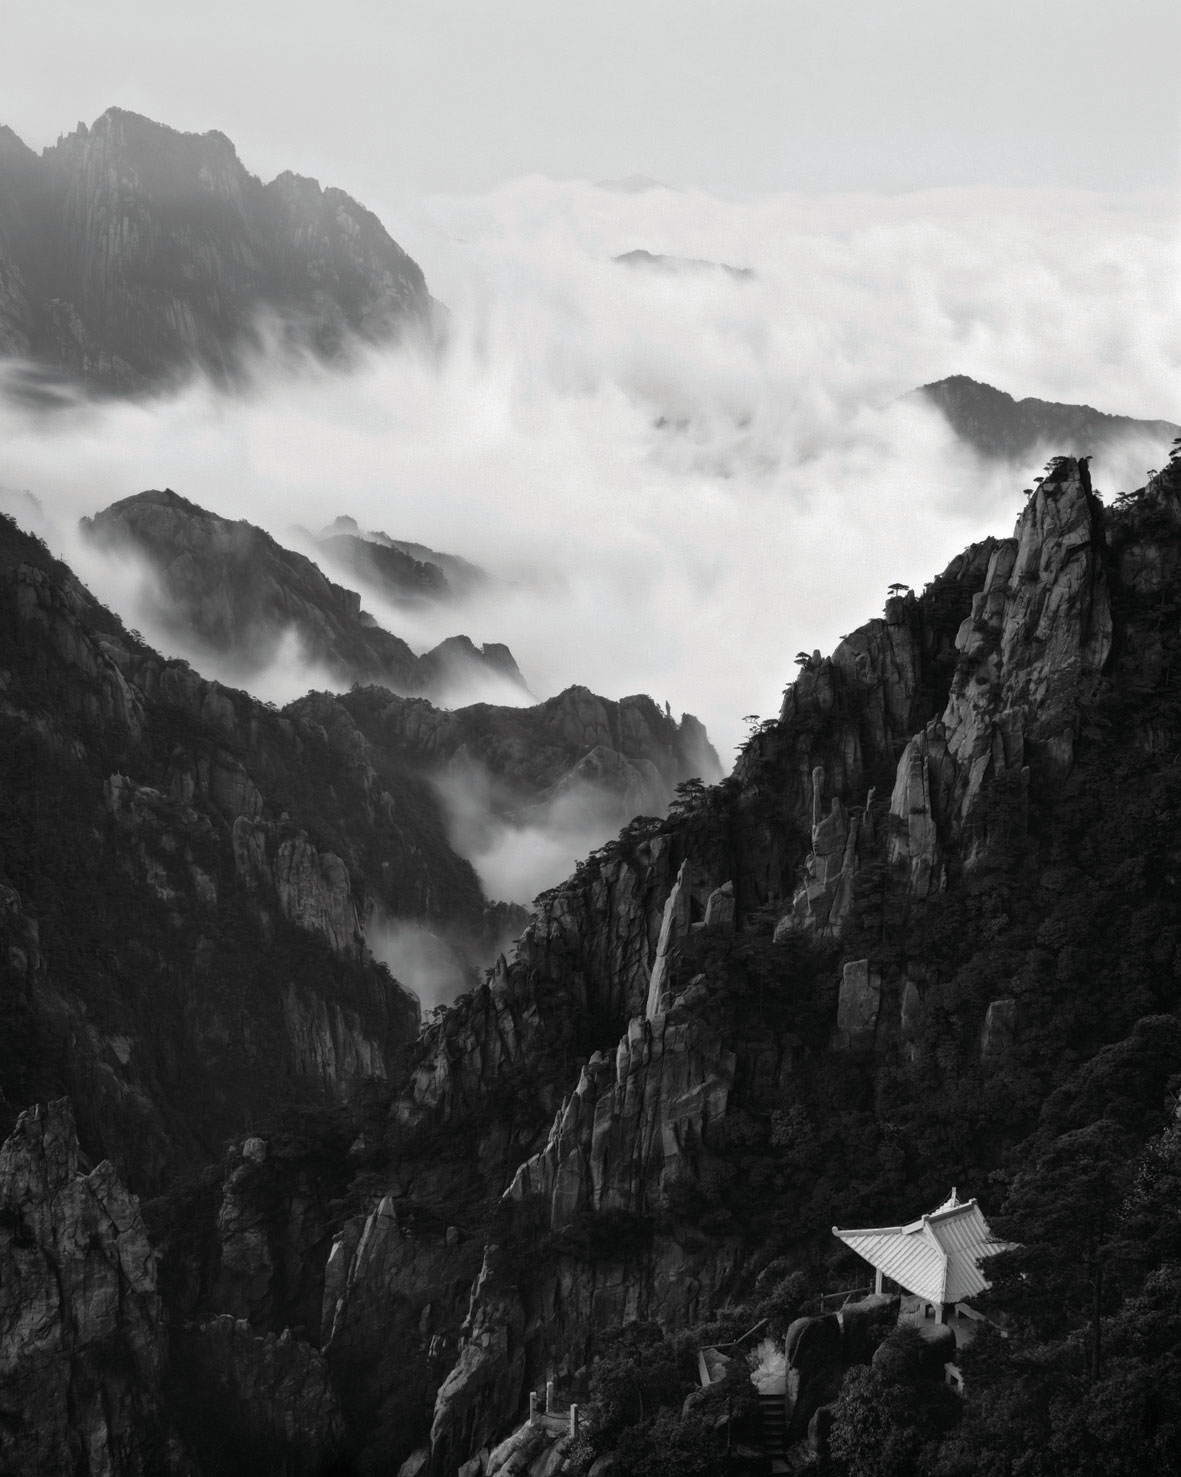 The White Pavilion in Huangshan